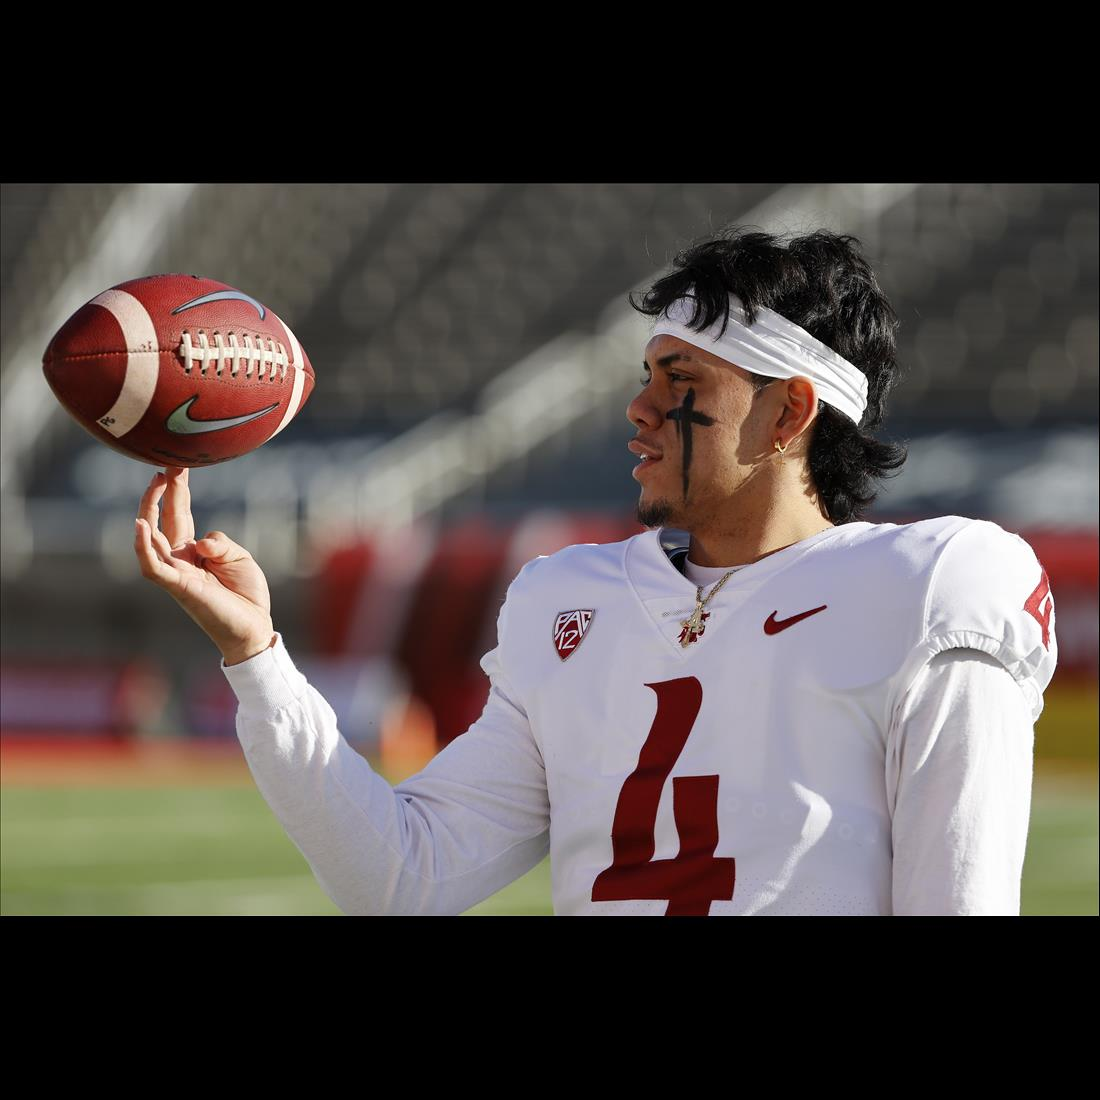 Dec 19, 2020; Salt Lake City, Utah, USA; Washington State Cougars quarterback Jayden de Laura (4) prepares for their game against the Utah Utes at Rice-Eccles Stadium. Mandatory Credit: Jeffrey Swinger-USA TODAY Sports